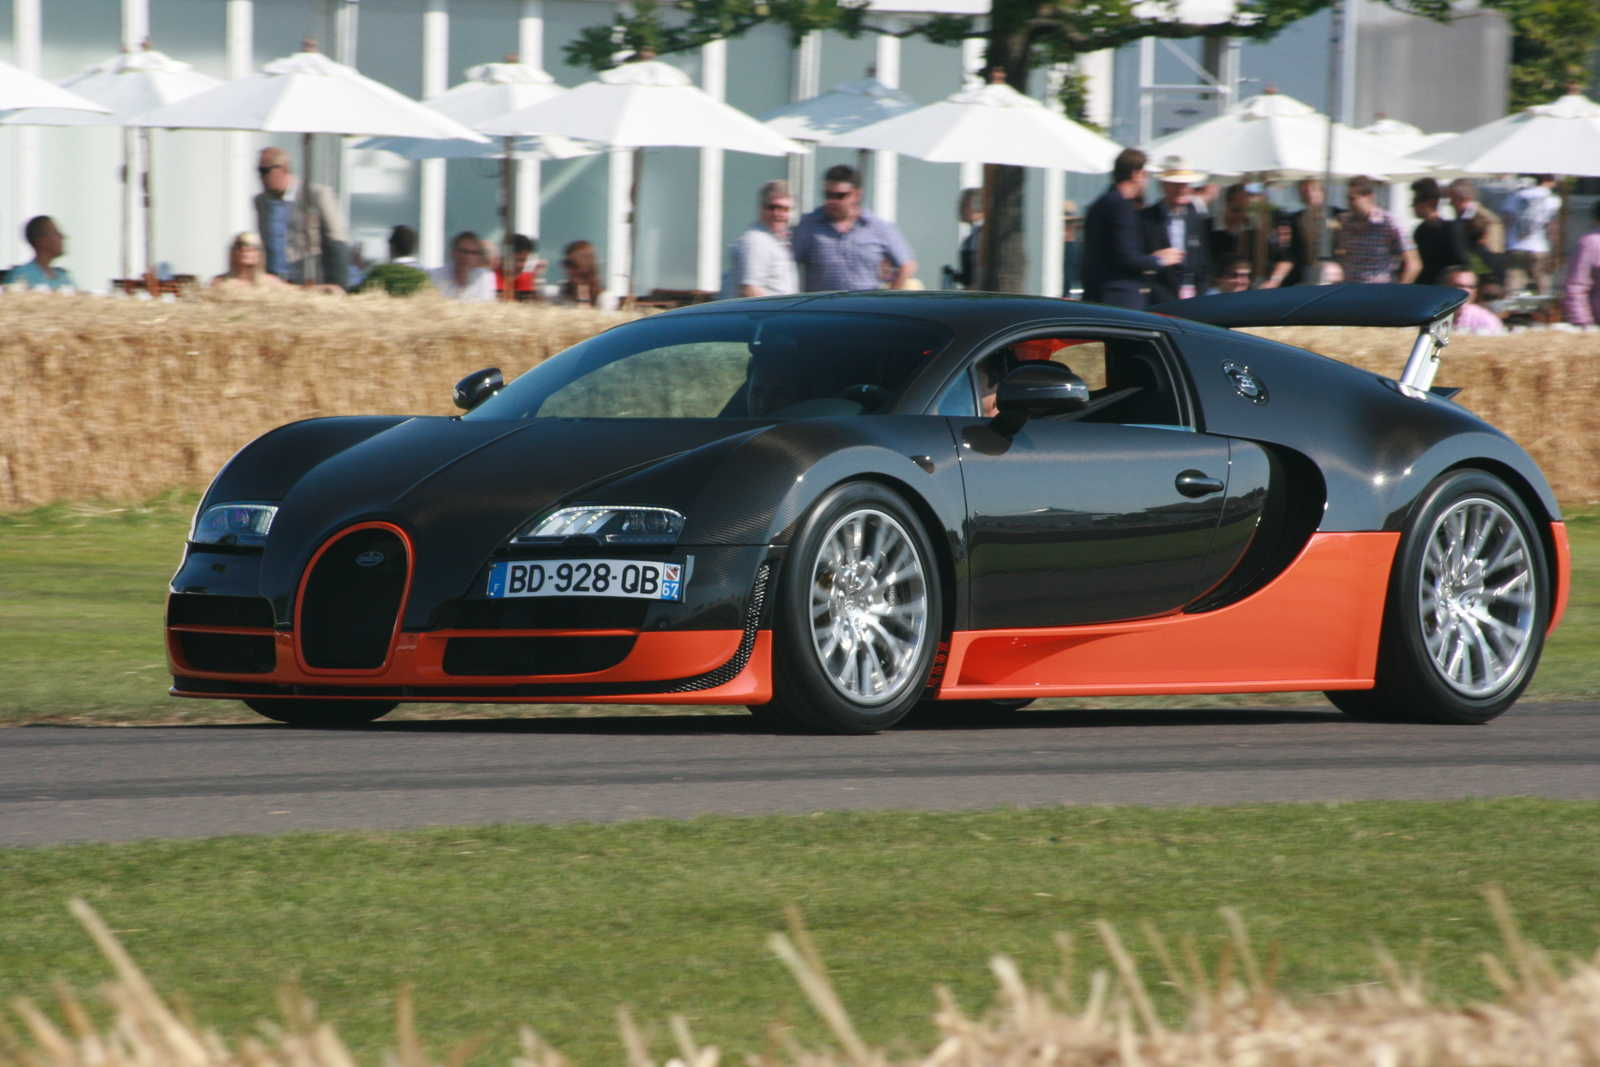 Platz 1: Bugatti Veyron Supersport